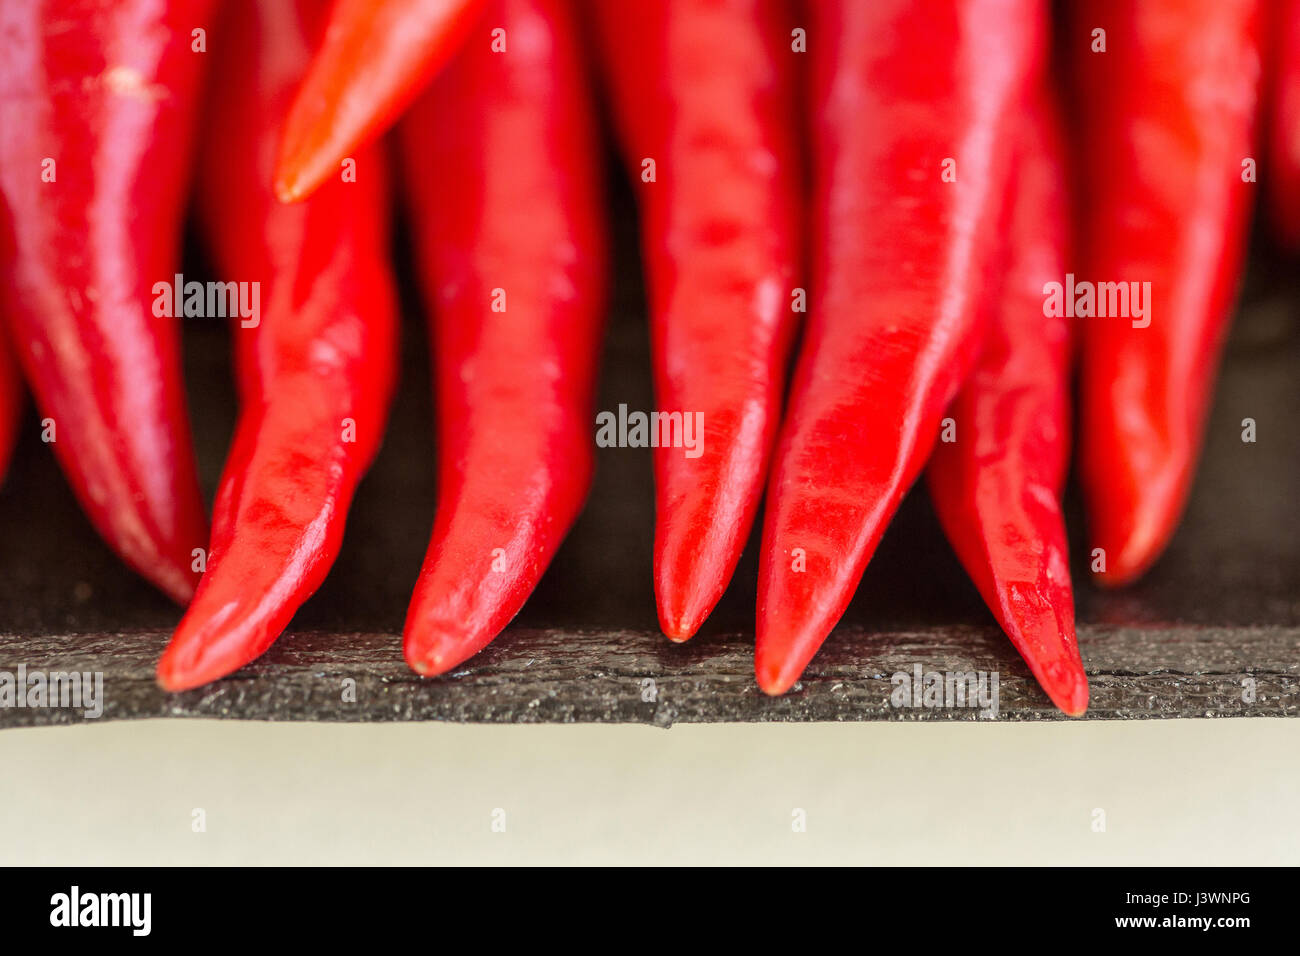 red hot chili peppers, popular spices concept - macro sharp tips of the red chili peppers, fresh clean juicy pods - Stock Image